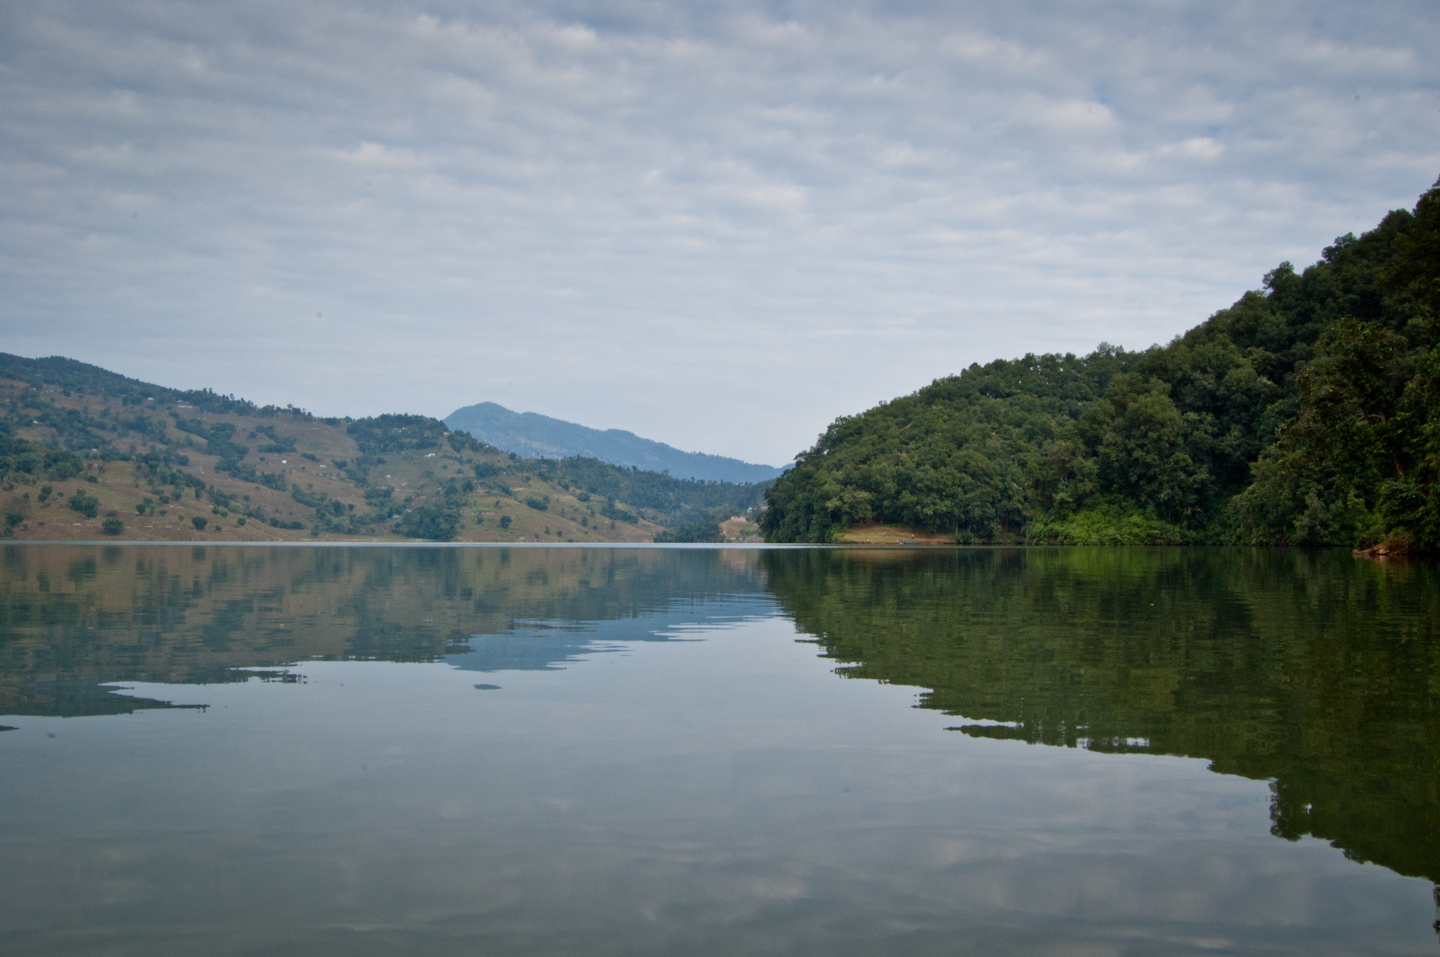 Photo: Begnas Lake  For #MirrorMonday curated by +Gemma Costa and +Elizabeth Edwards . More reflection shots coming today Inshallah!